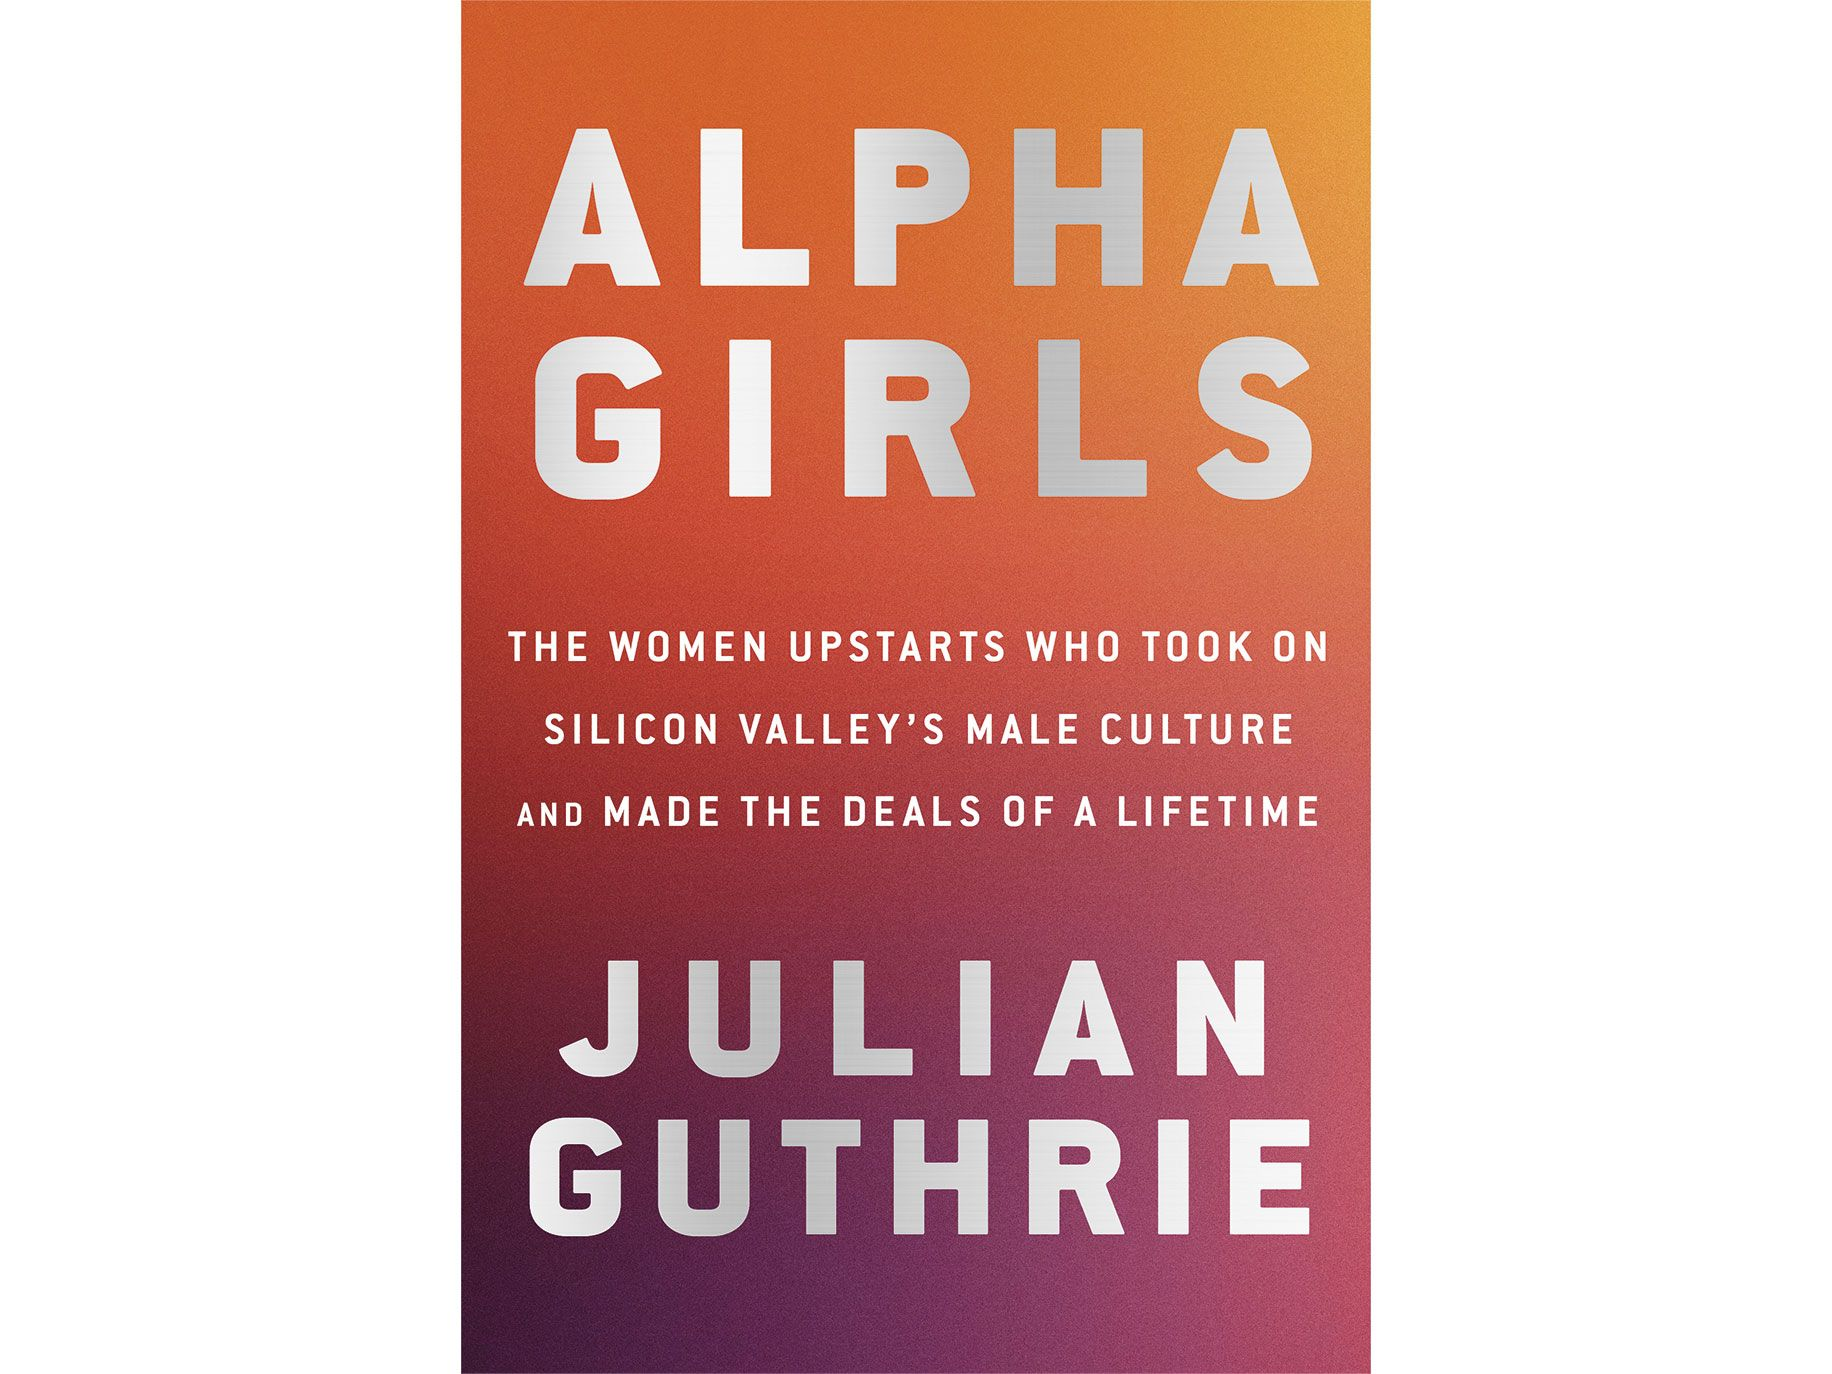 Alpha Girls: The Women Upstarts Who Took On Silicon Valley's Male Culture and Made the Deals of a Life, by Julian Guthrie.